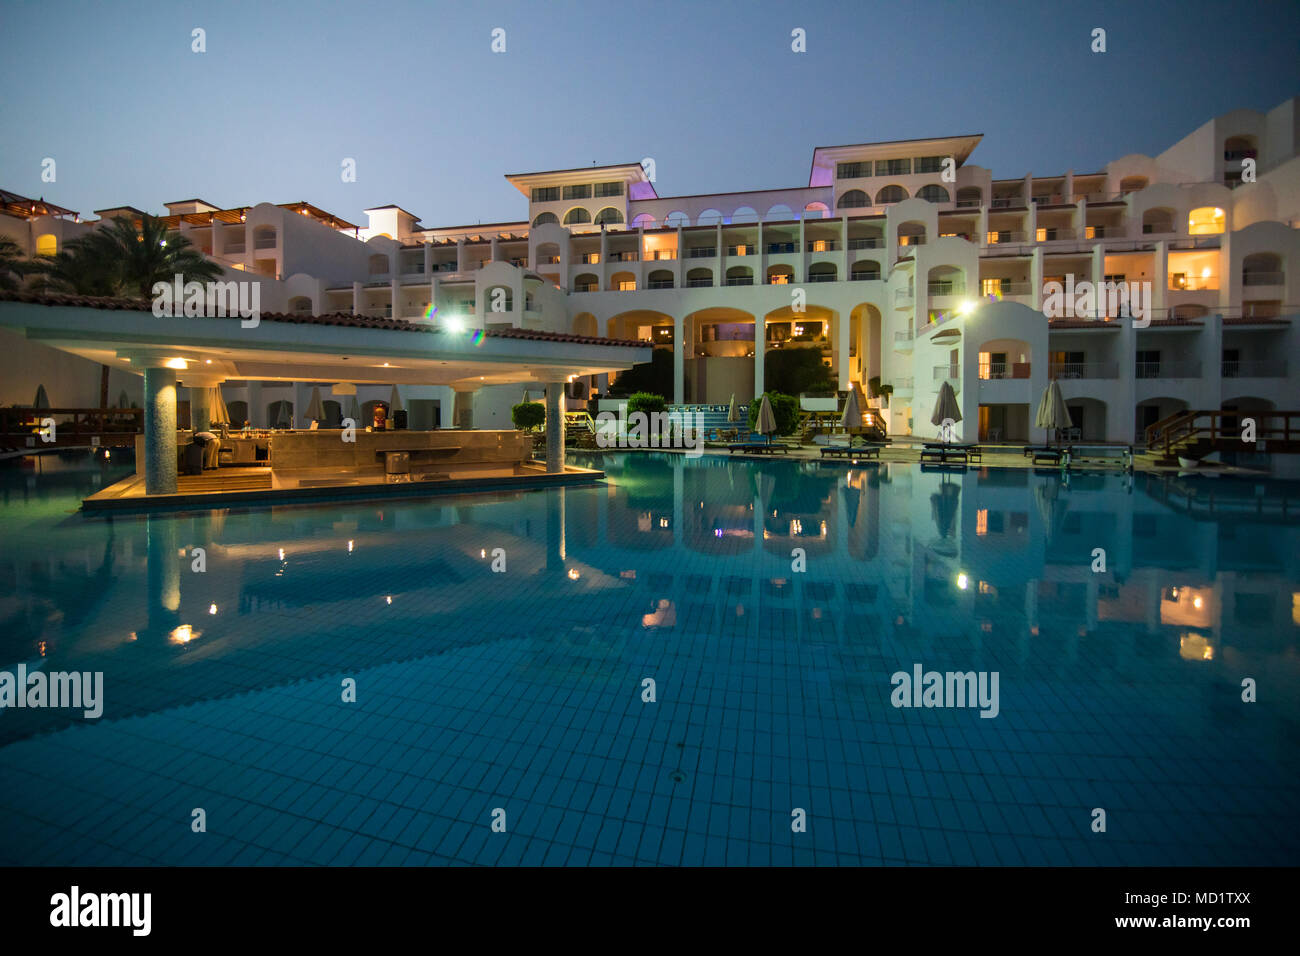 Night Illumination In Luxury Hotel With Swim Pools At Spa And Sea